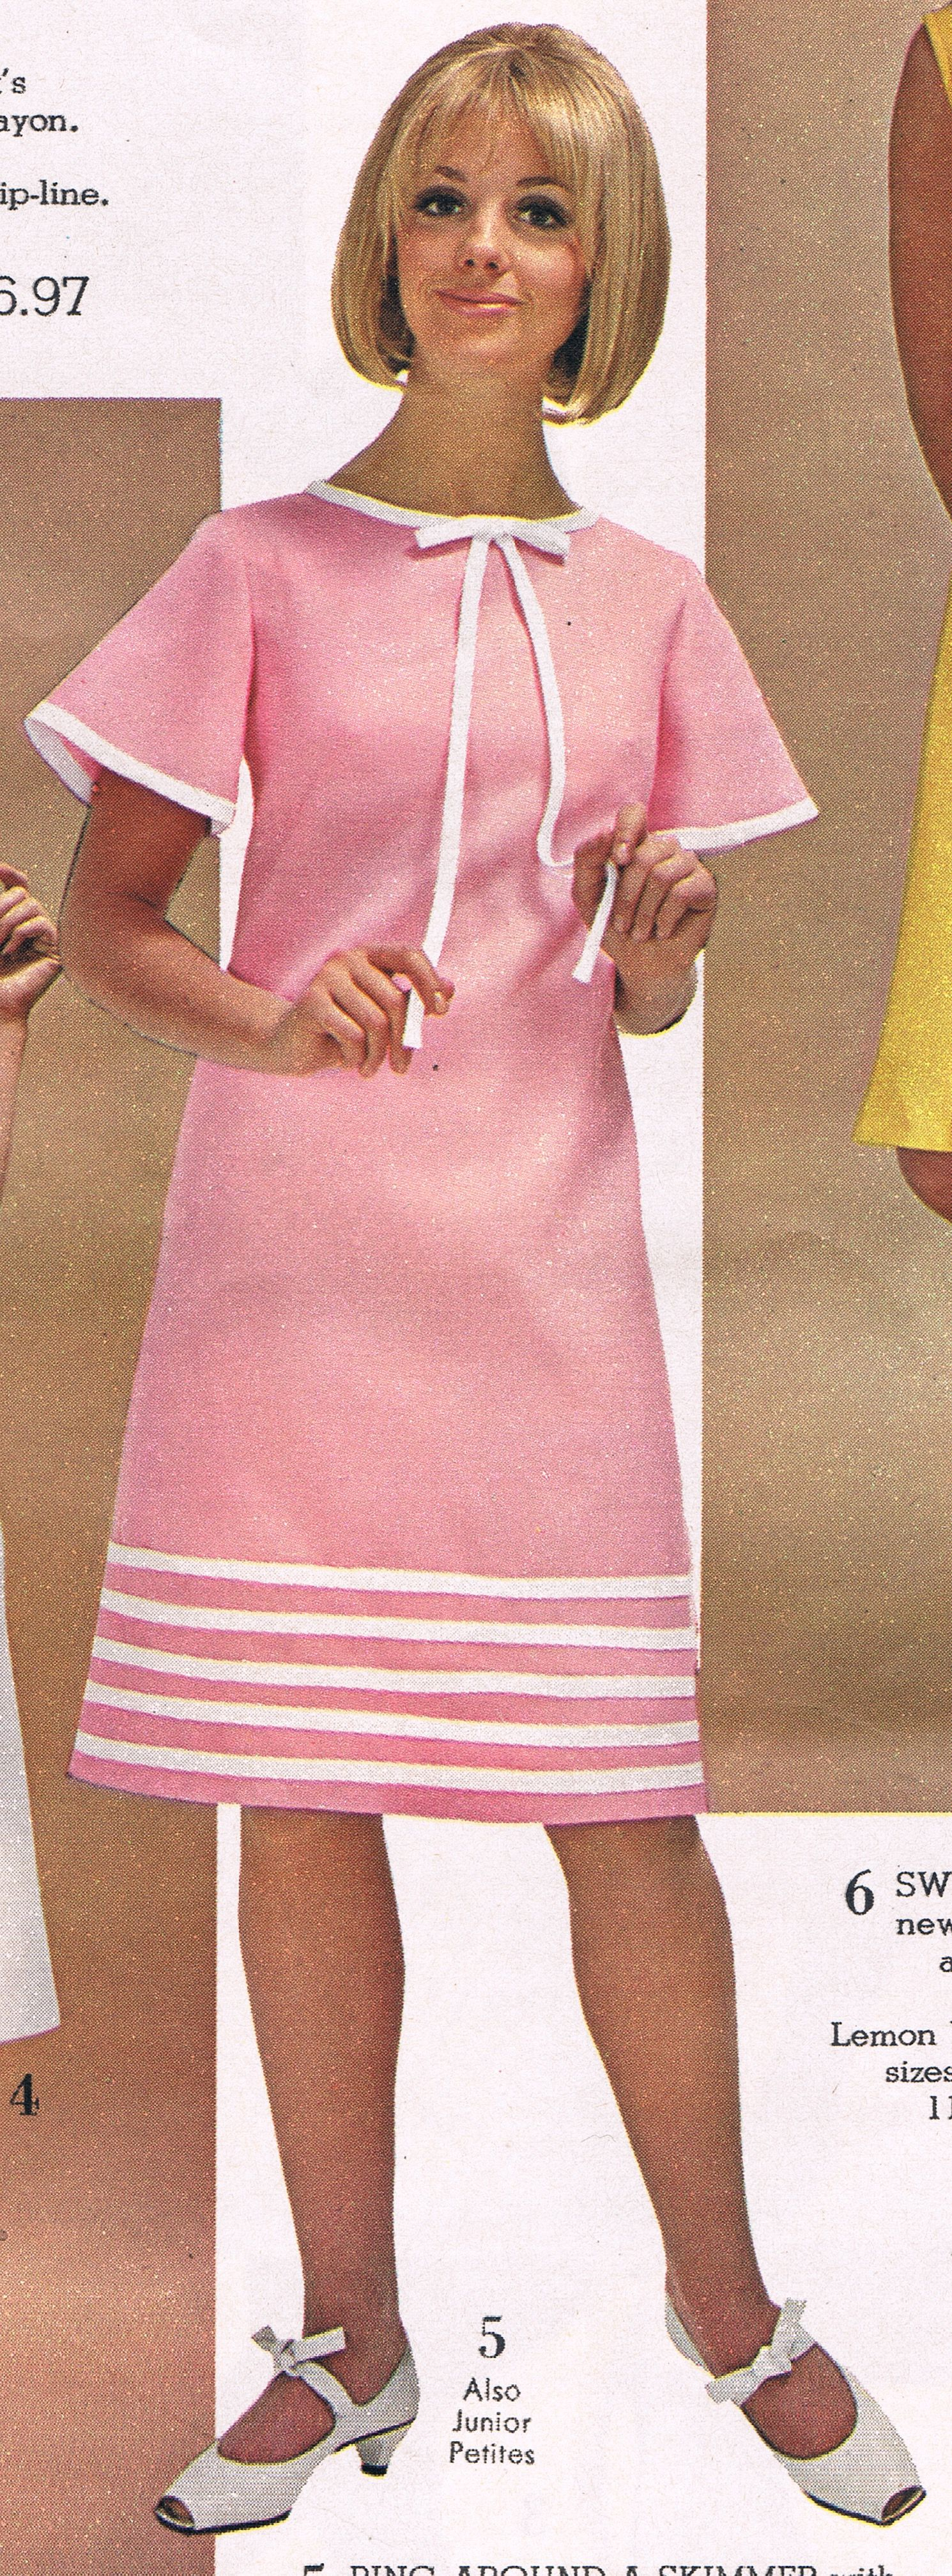 Spiegel catalog 1966. | 60s 70s fashions featuring Cay Sanderson ...